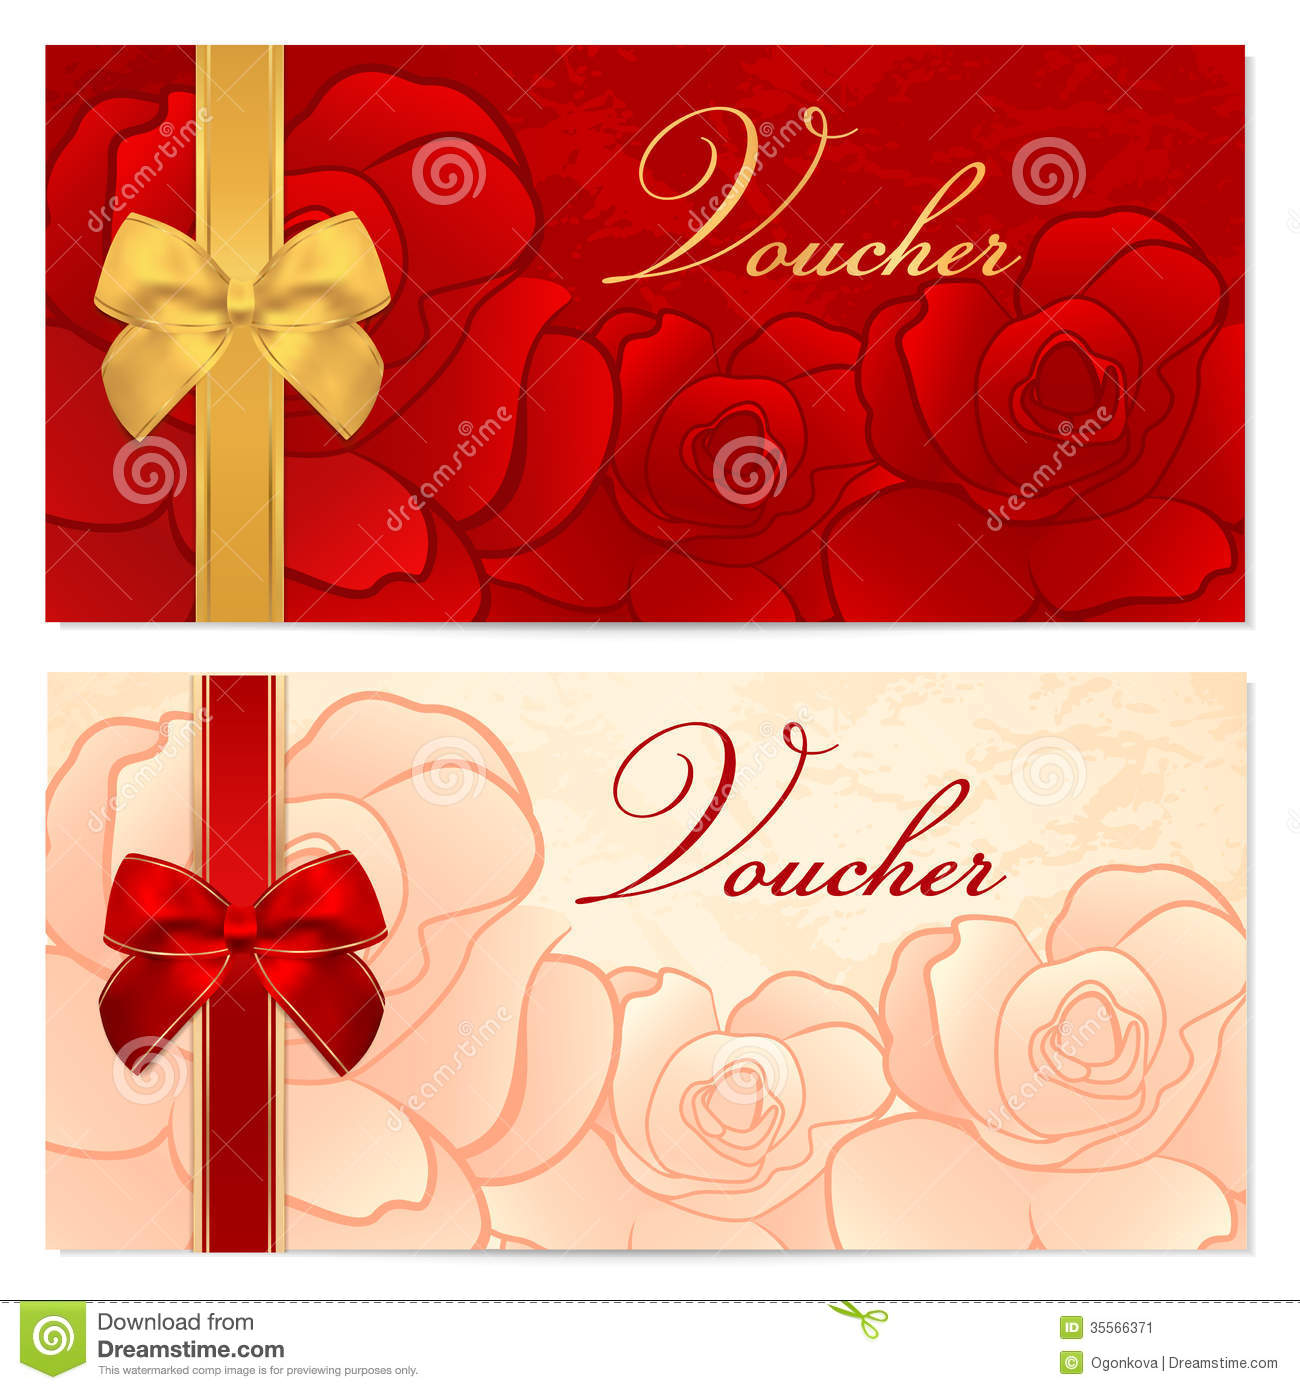 Gift certificate voucher coupon template bow f stock vector gift certificate voucher coupon template bow f yelopaper